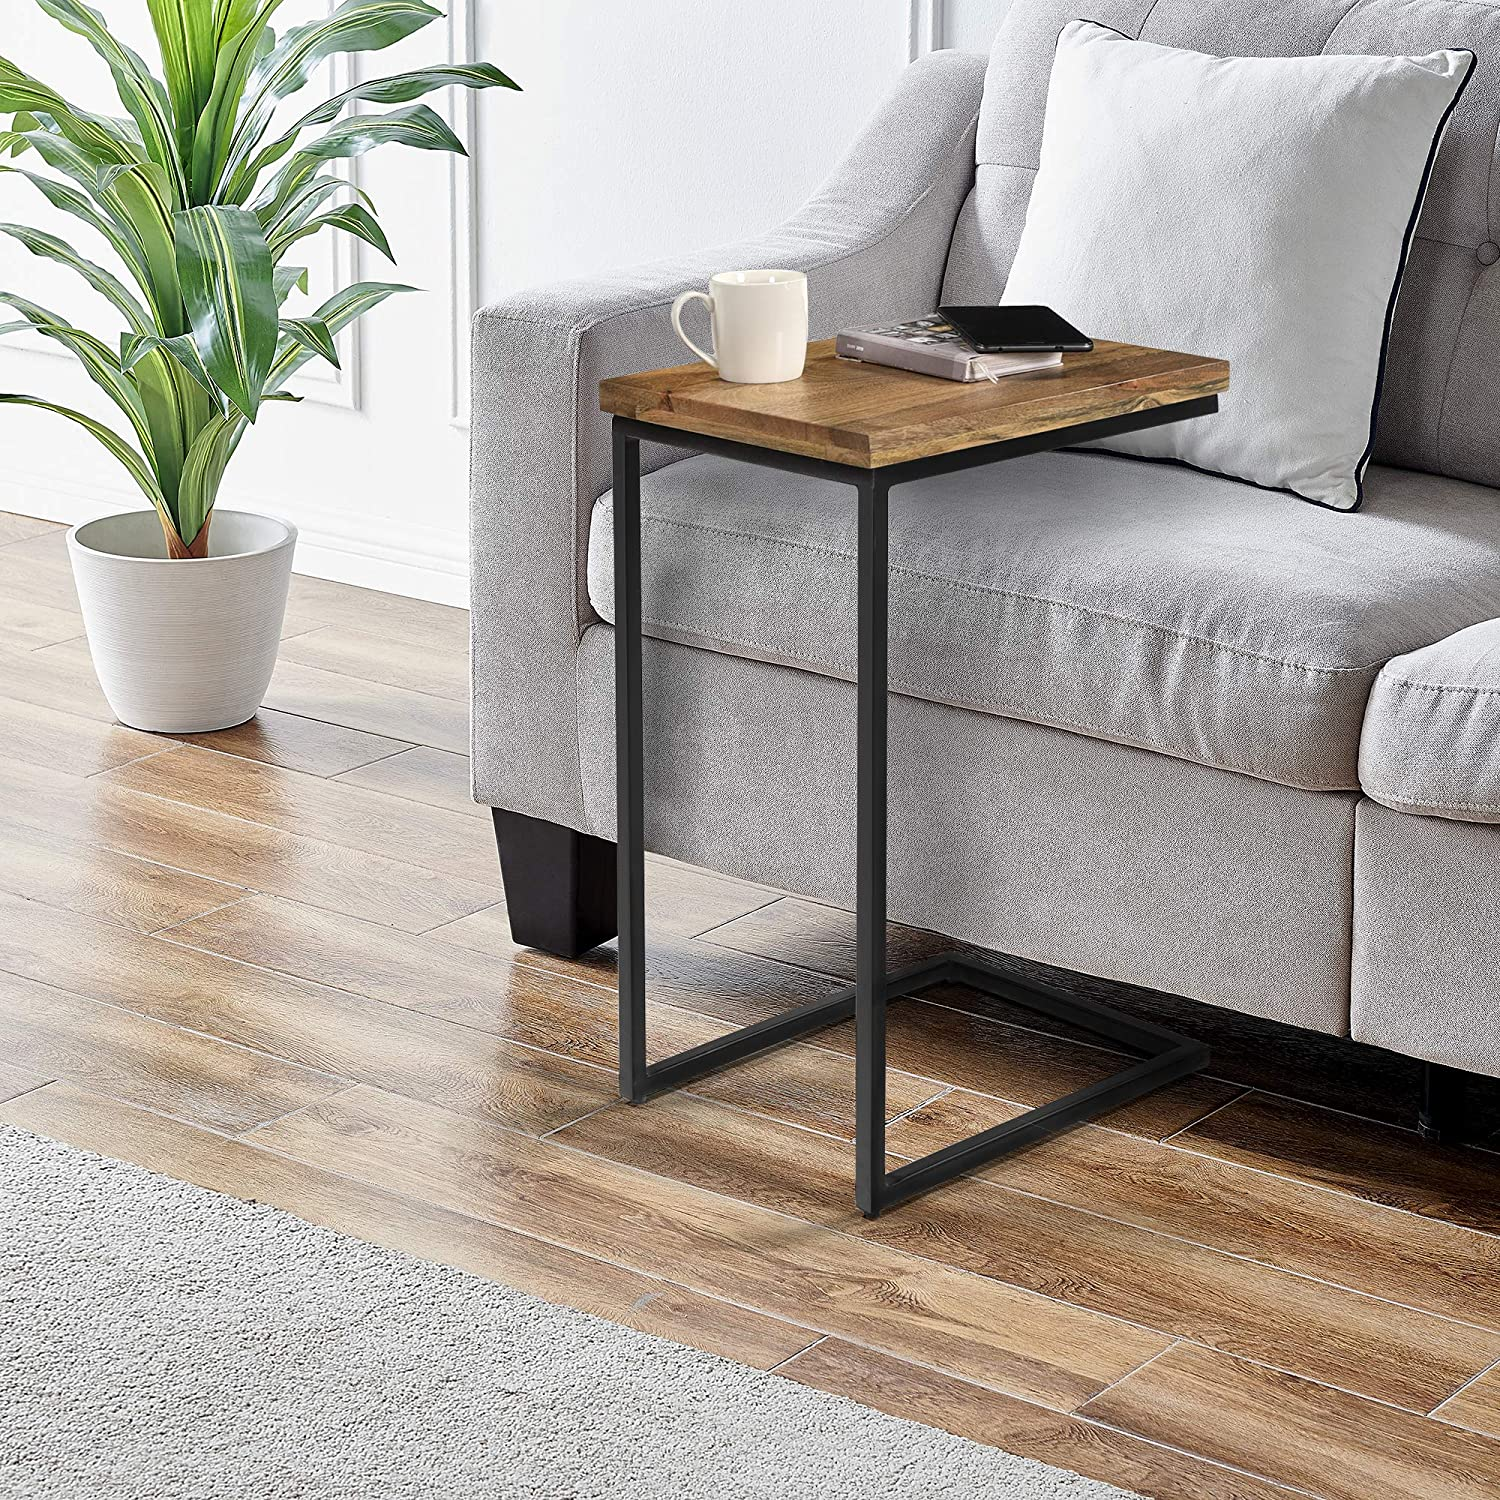 FirsTime & Co. Natural Eli C Side Table, Natural Wood, 18 x 14 x 26.25 inches